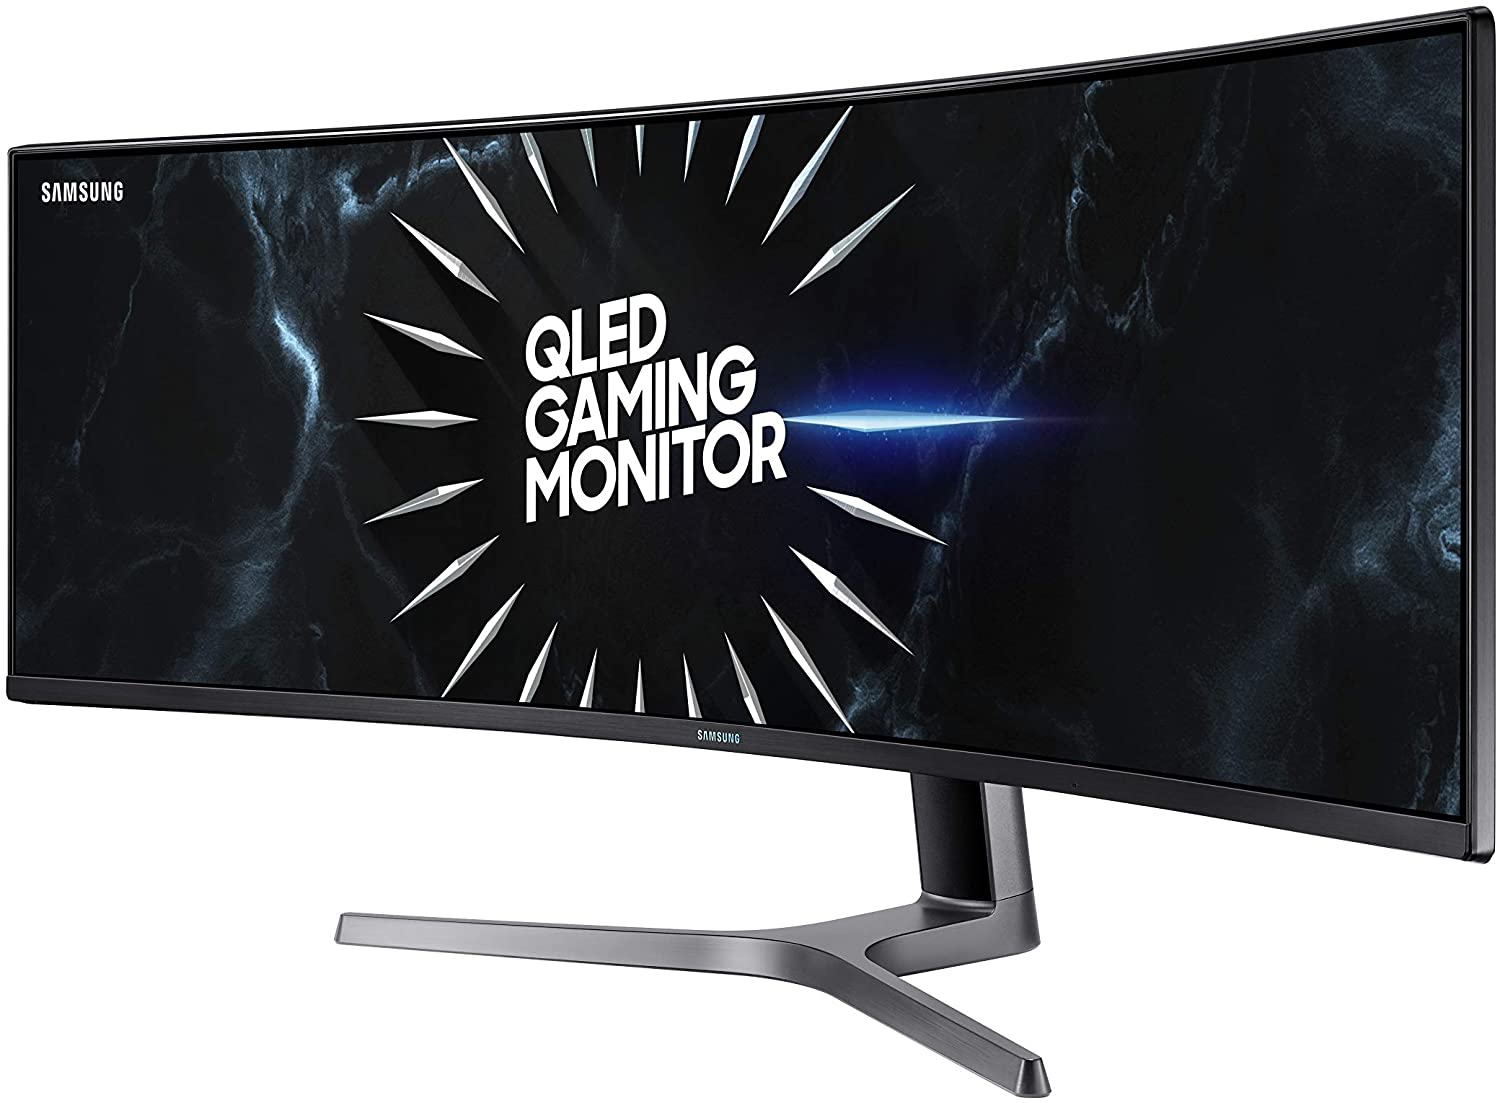 "Ultrawide Samsung CRG9 49"" 1440p 120hz QHD gaming monitor new price set at $999"